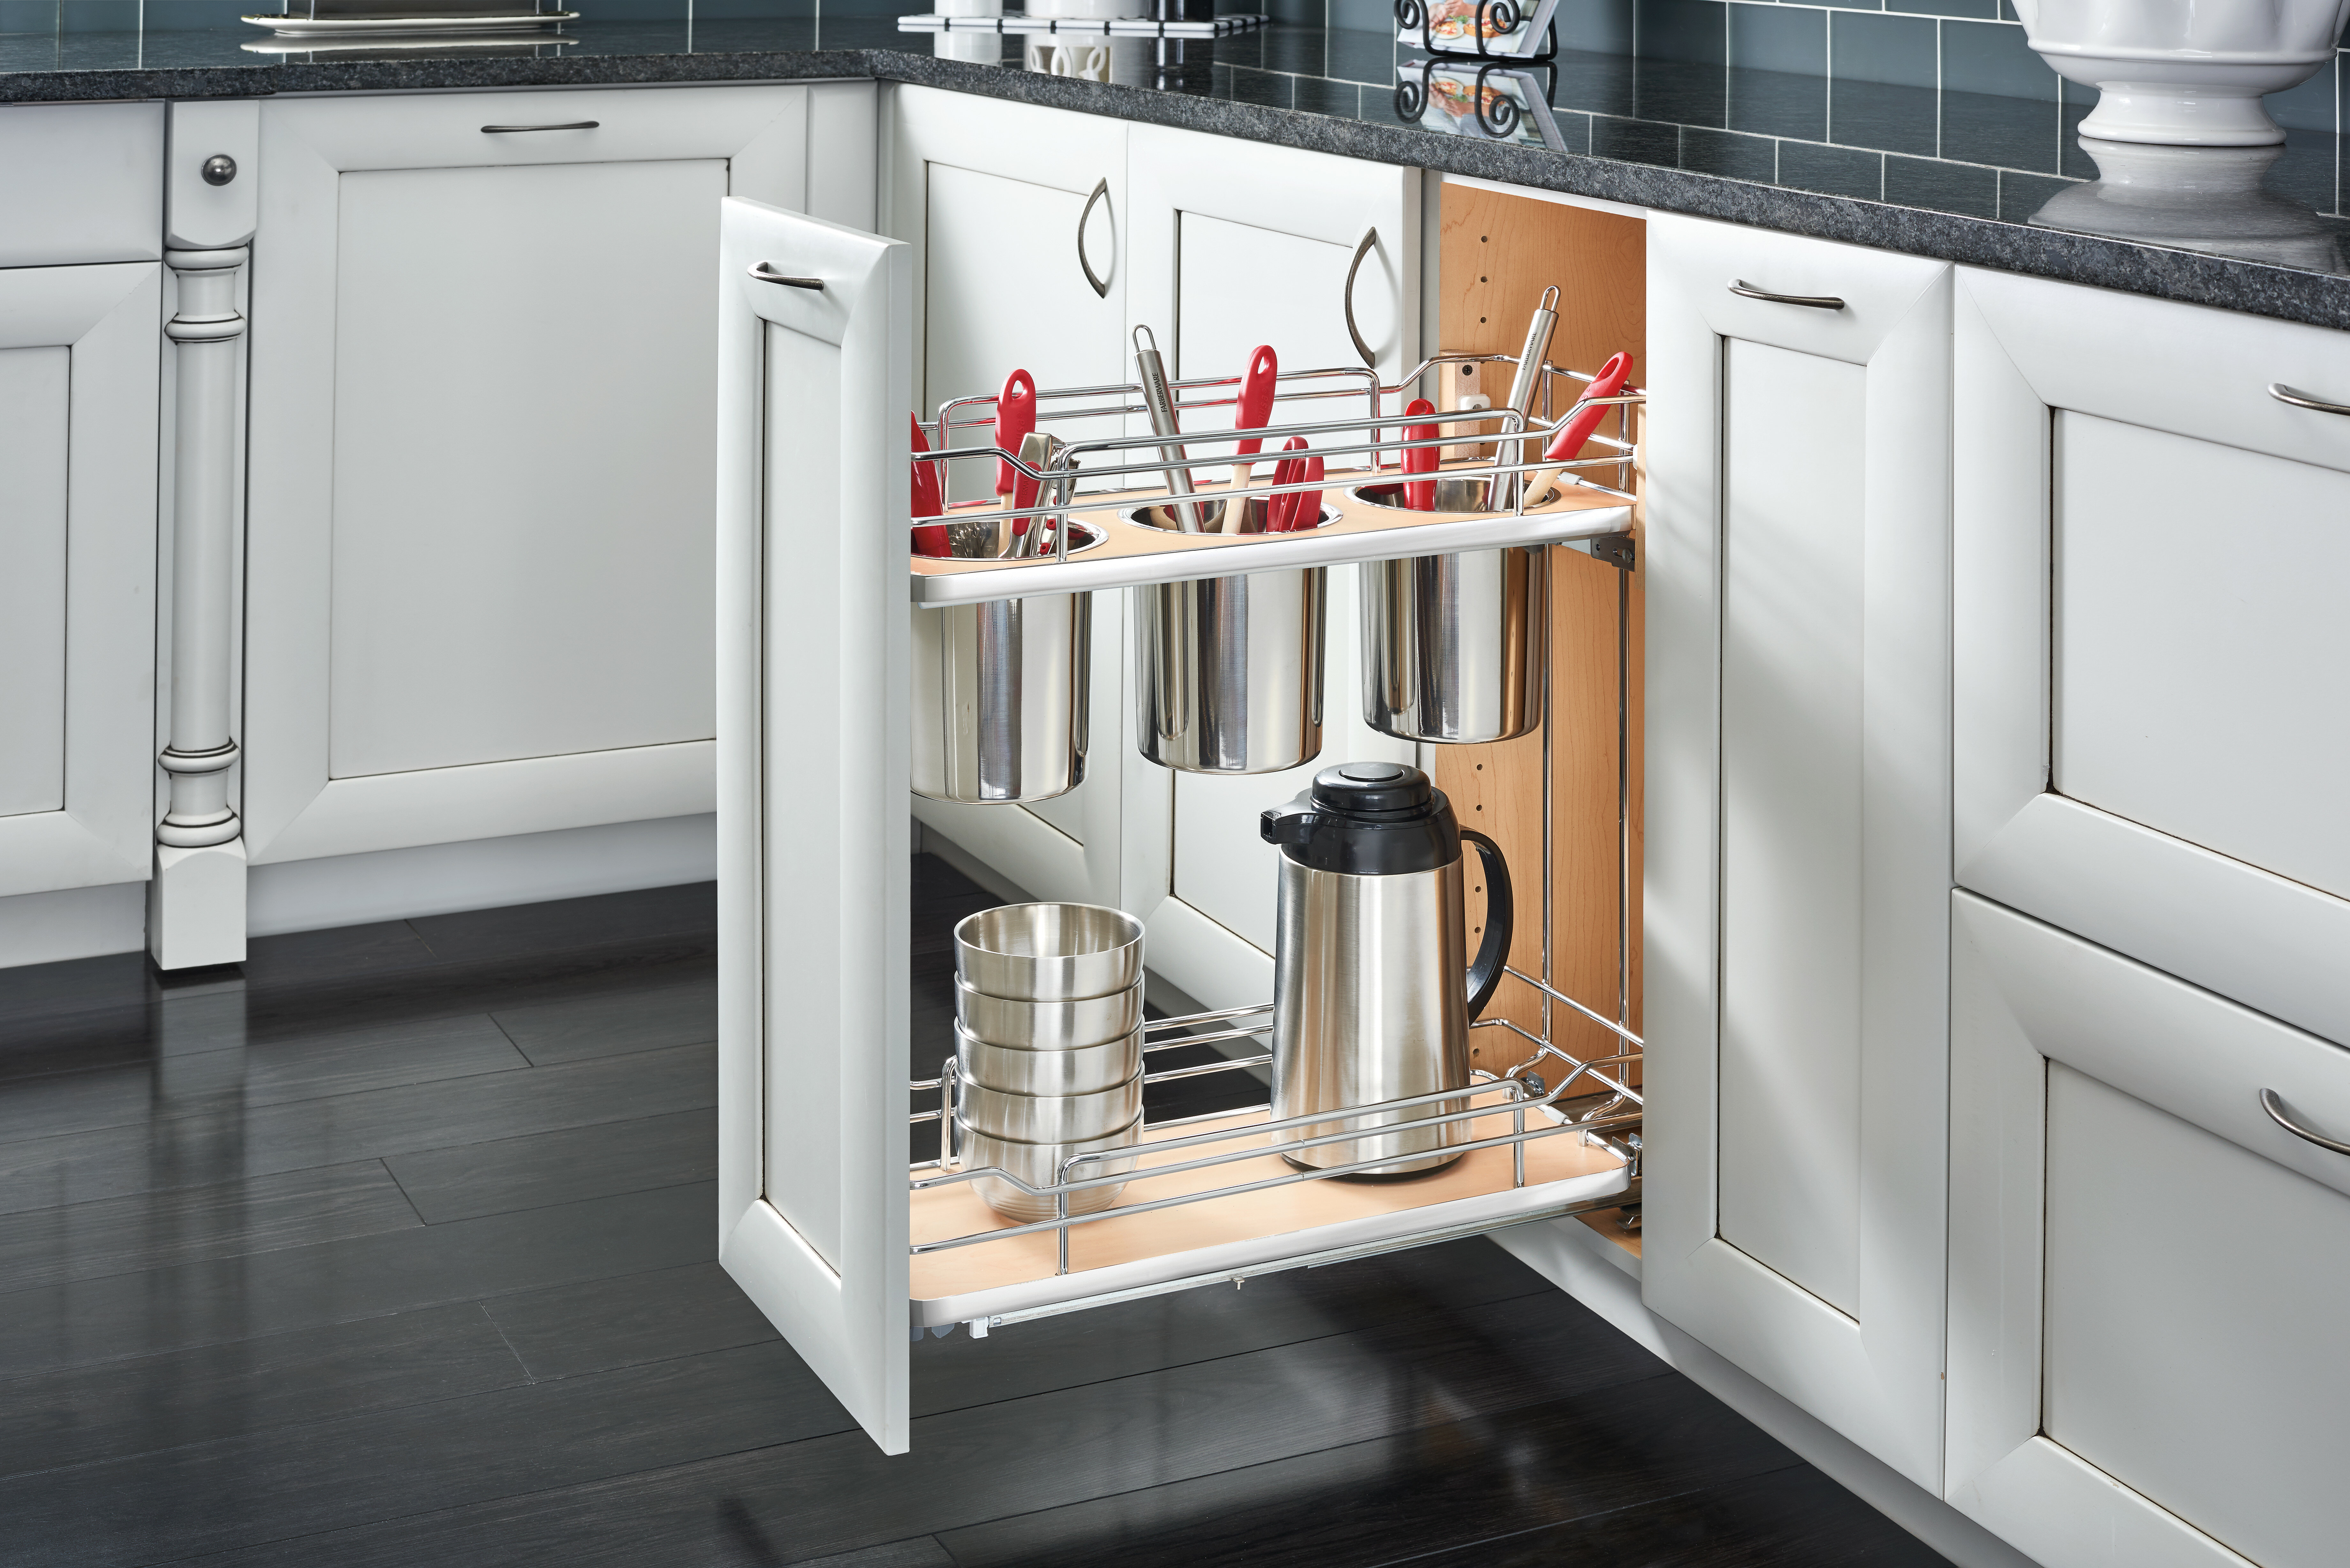 out w pull d x two p with base organizers a cabinet in rev shelf organizer tier cookware h close slides cr soft